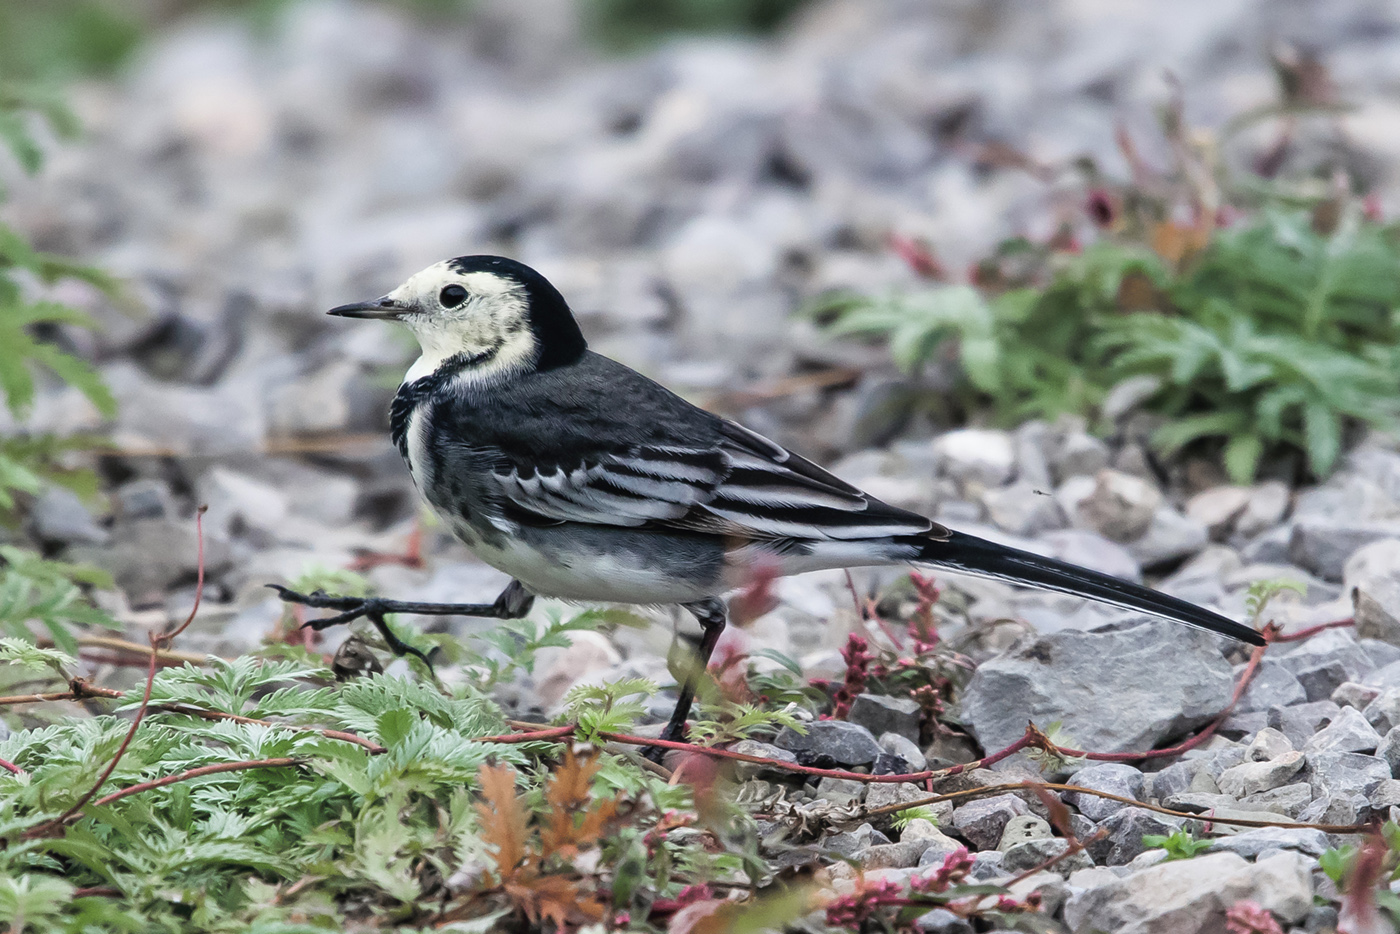 Goosestepping-wagtail